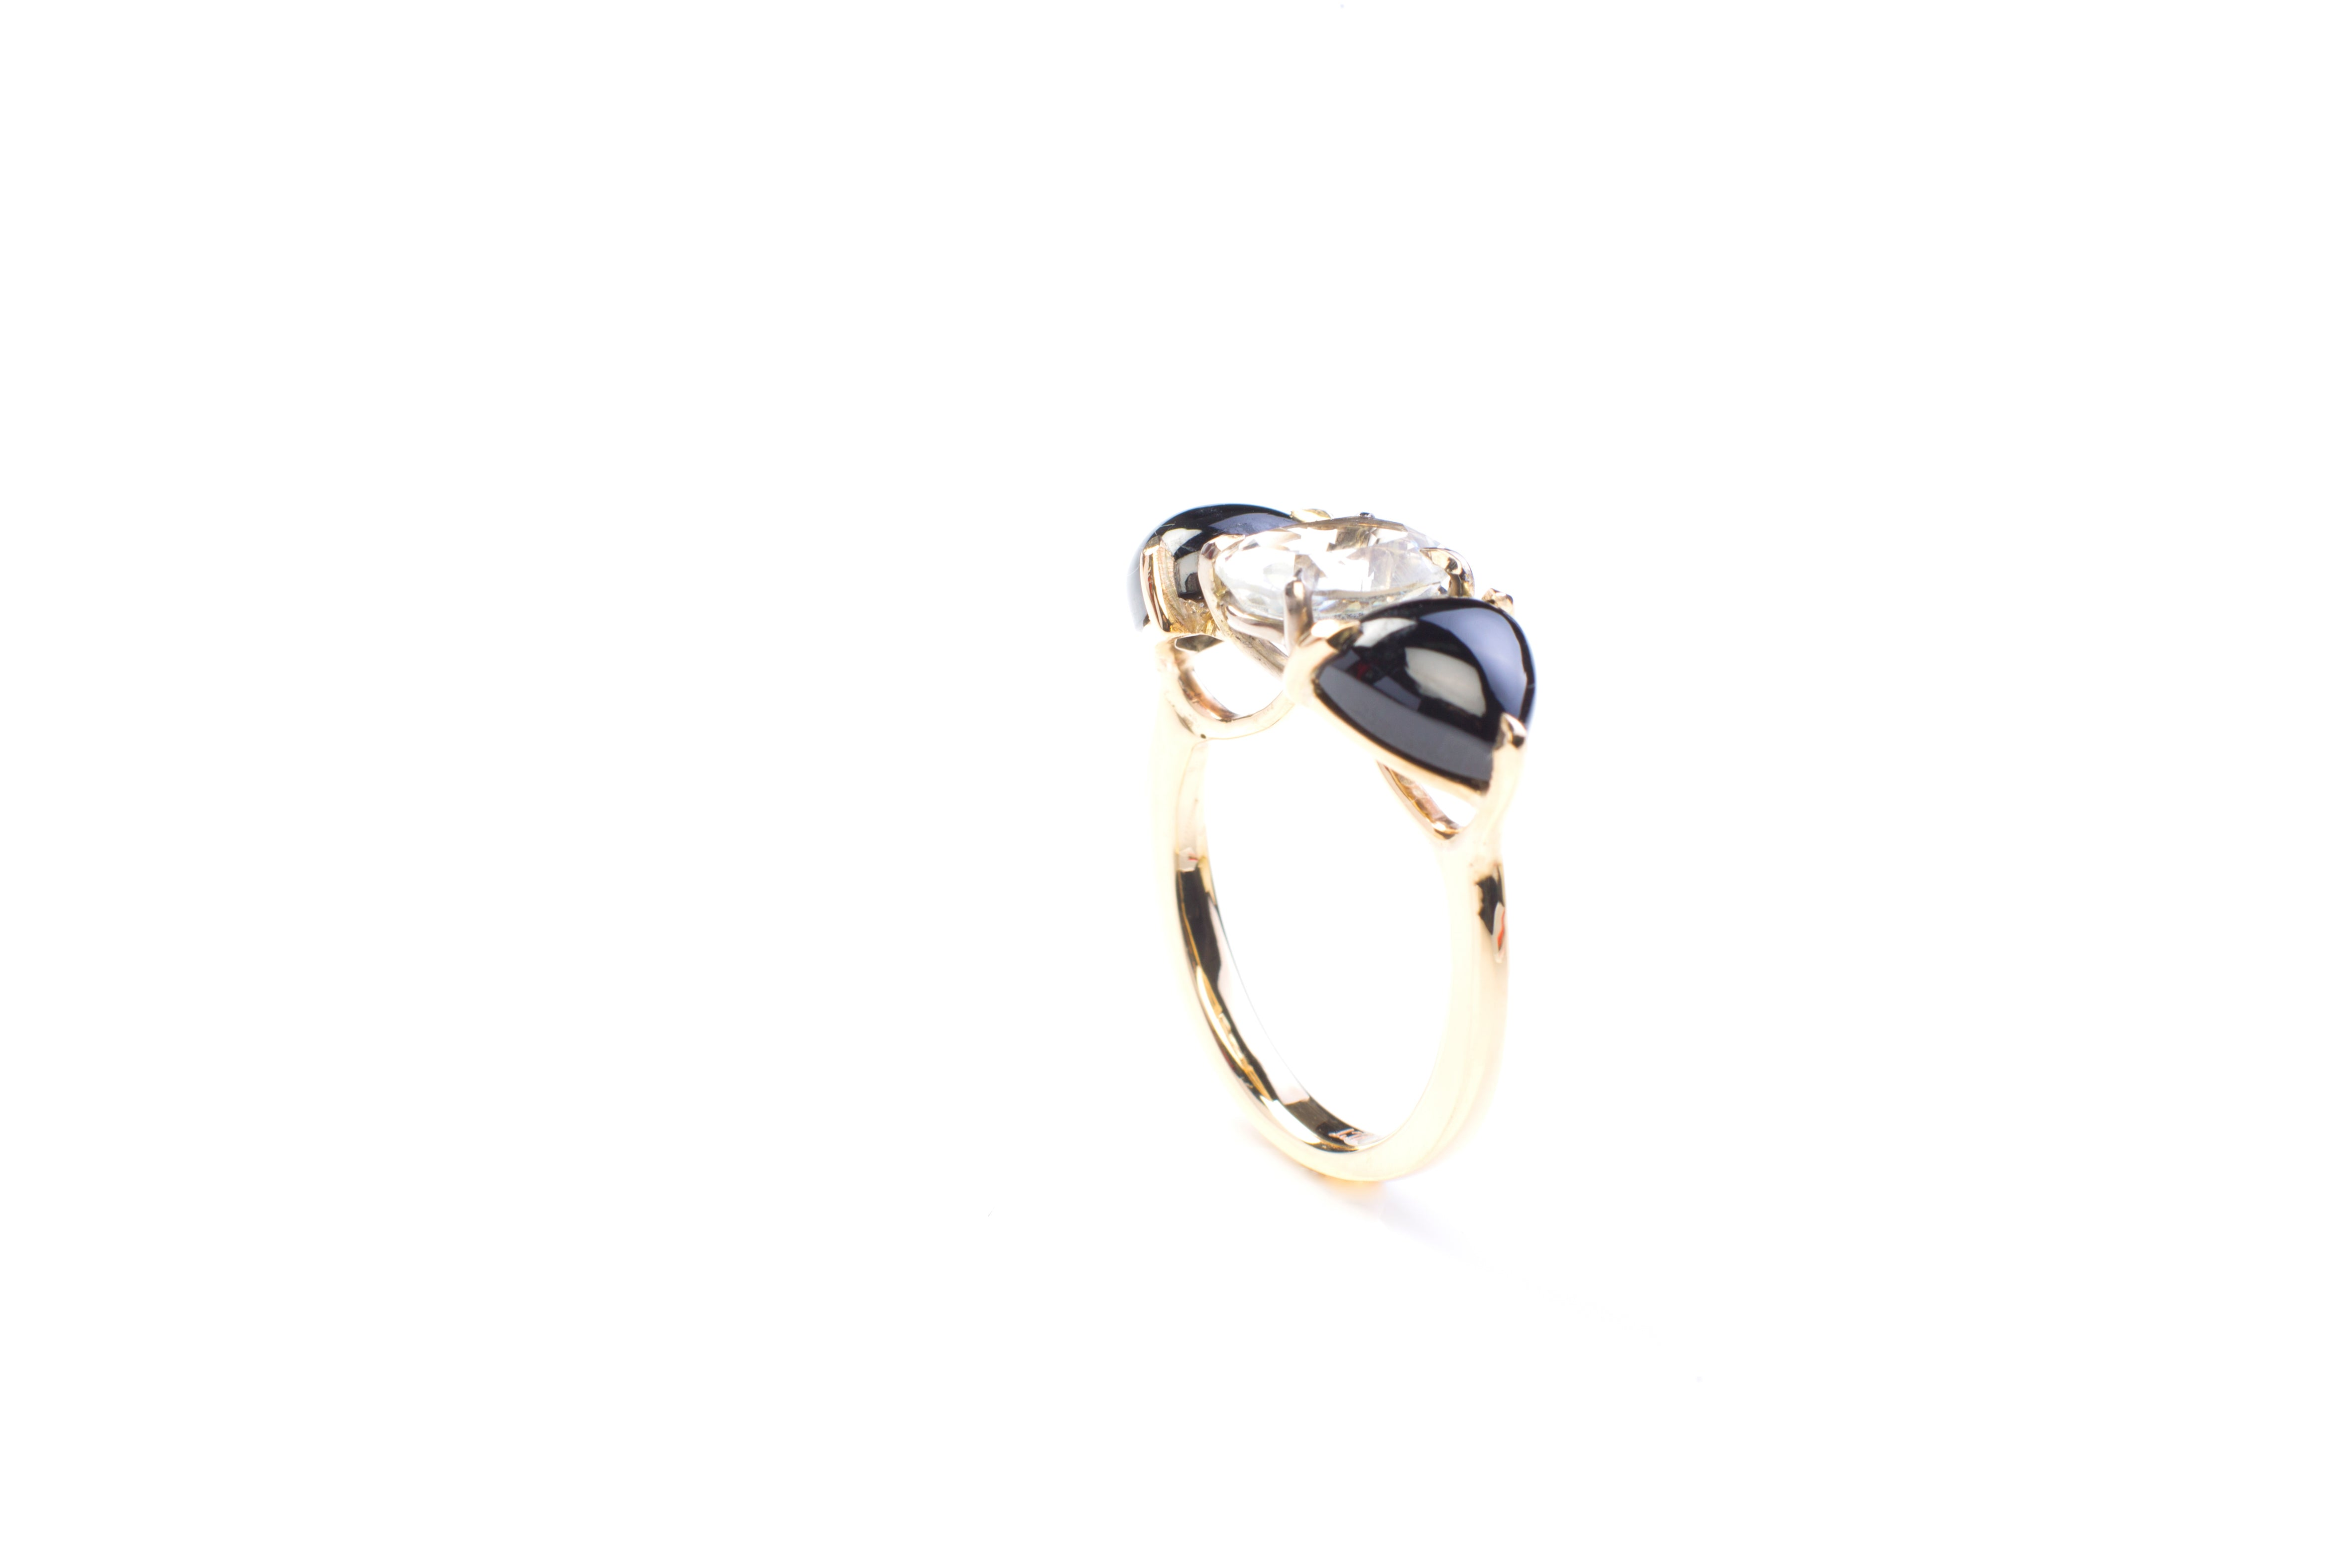 Reptilia cocktail ring